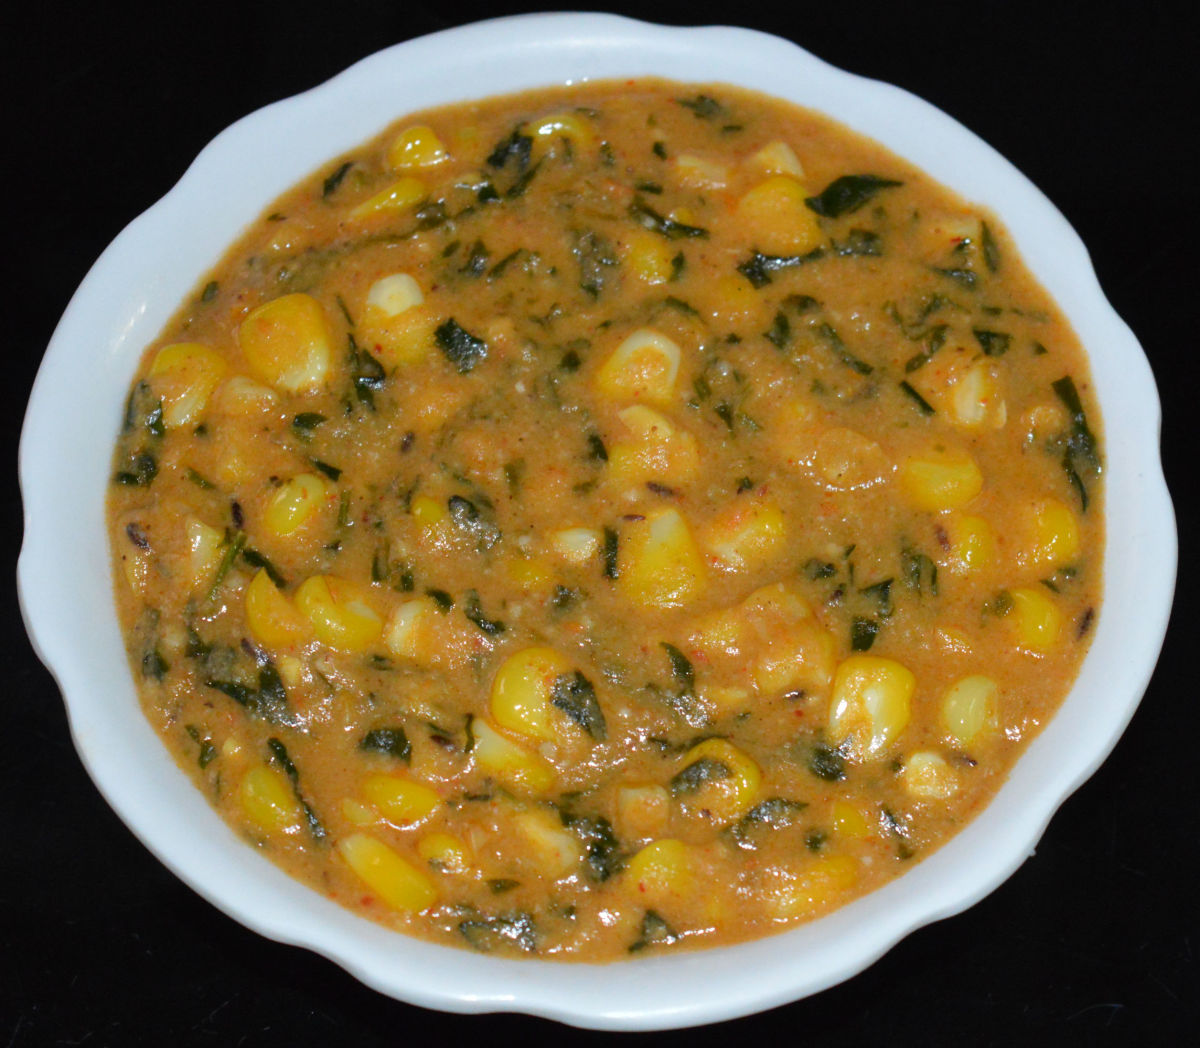 Serve this curry hot with chapati, roti, paratha, poori, or rice. Enjoy the taste!